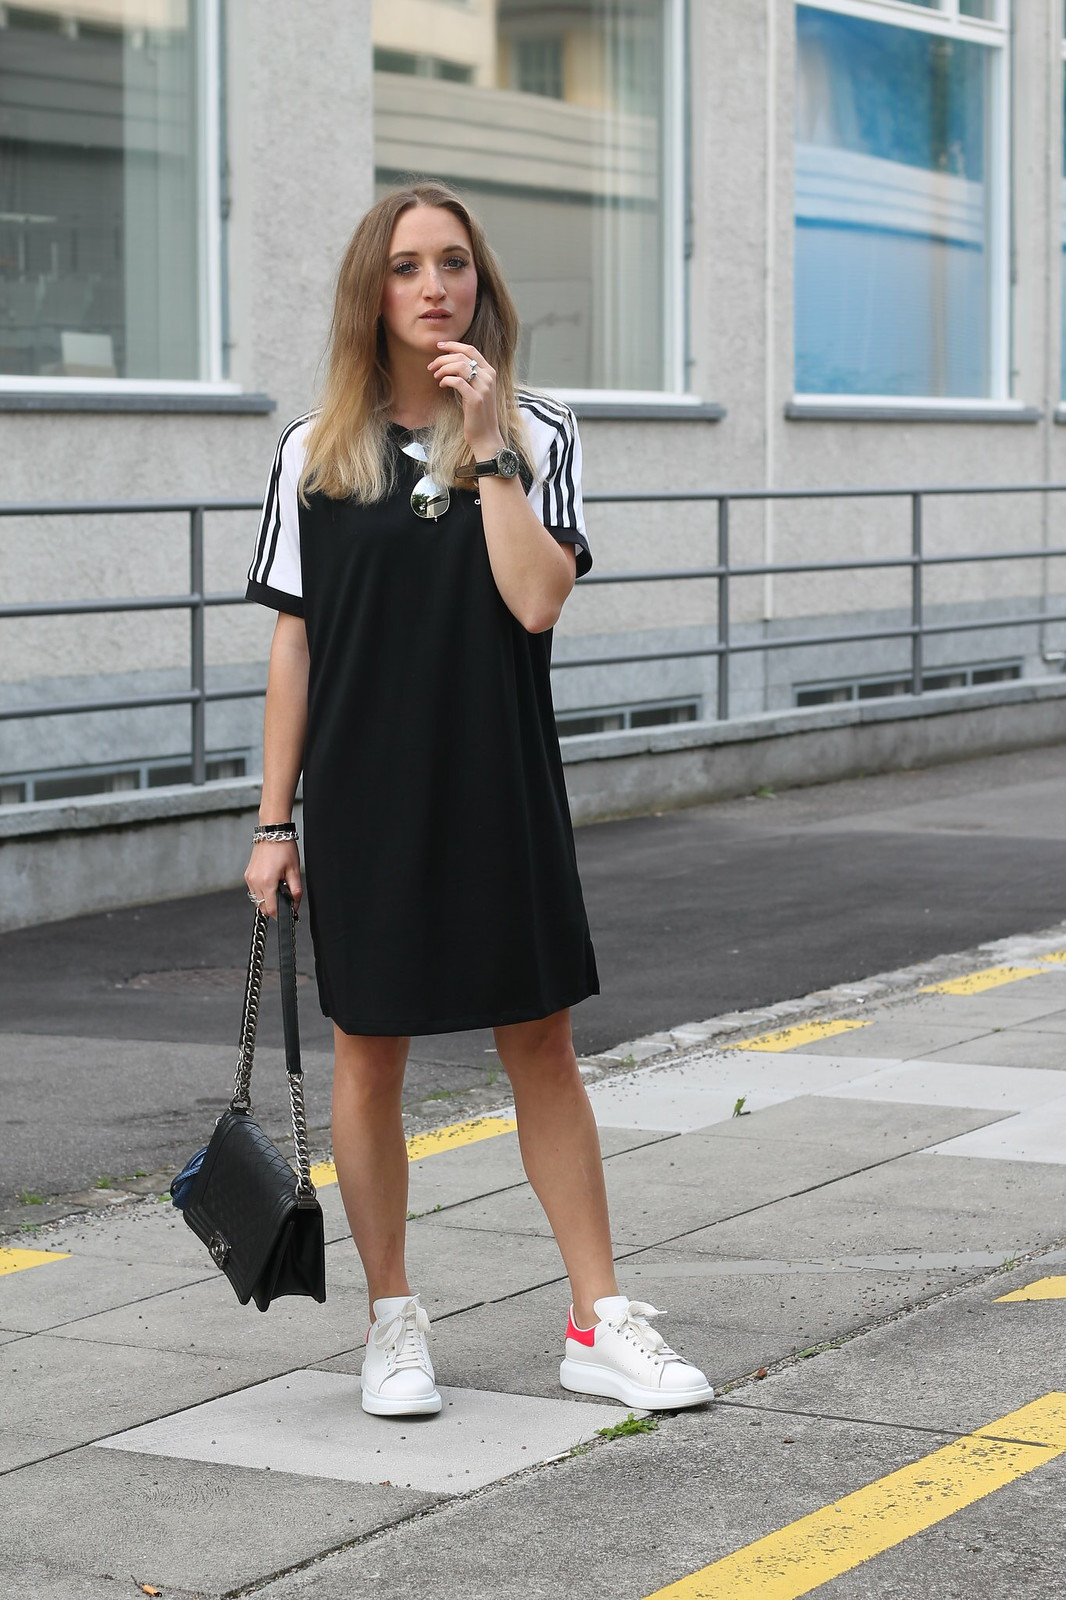 adidas-dress-and-alexander-mc-queen-sneaker-whole-outfit-front-wiebkembg